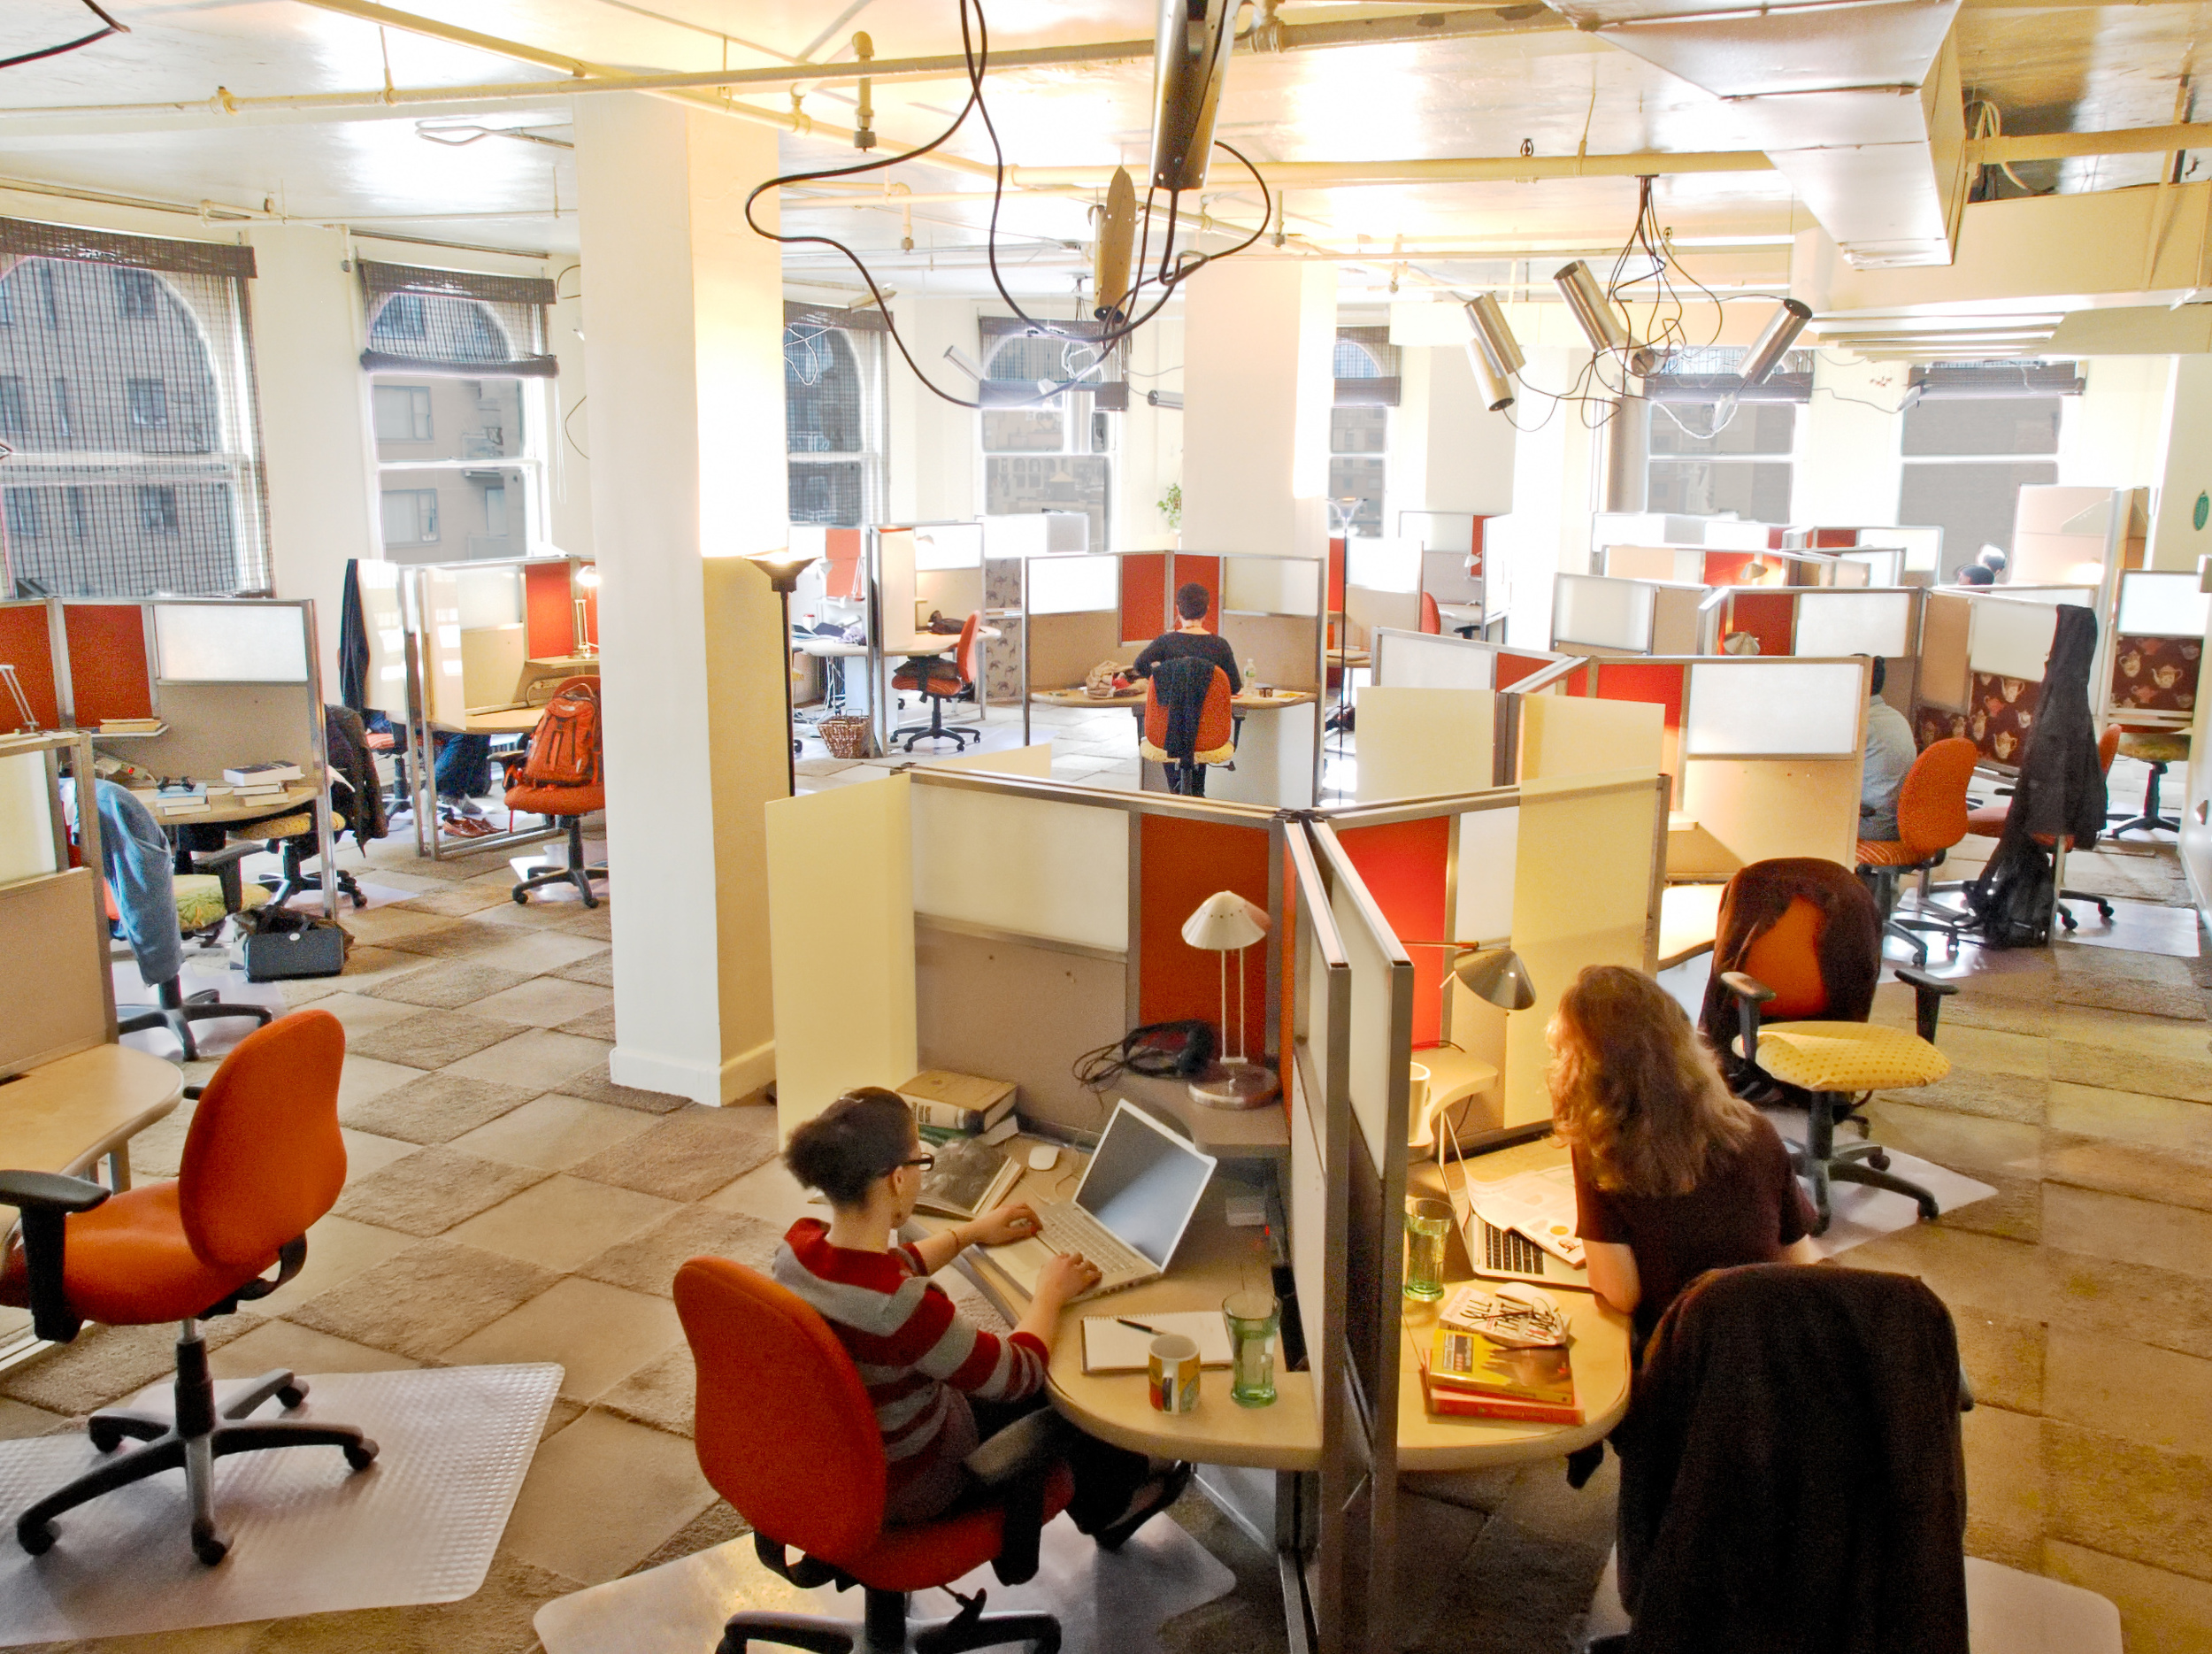 45 partitioned work spaces assure privacy and productivity.